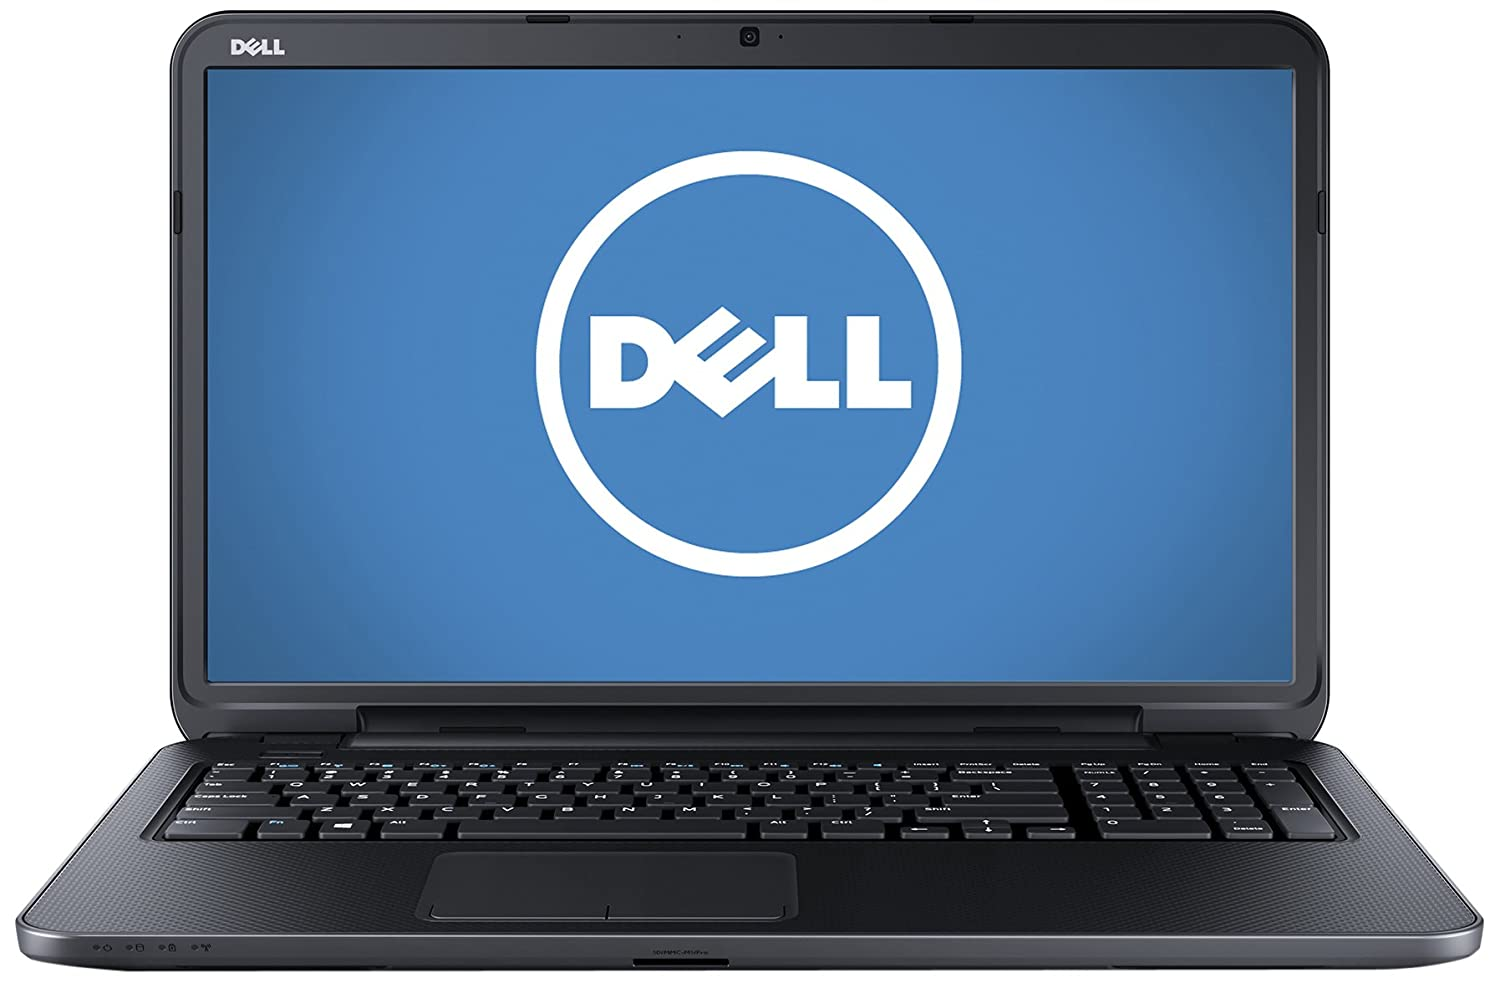 Dell Inspiron i17RV-8183BLK 17.3-Inch Laptop